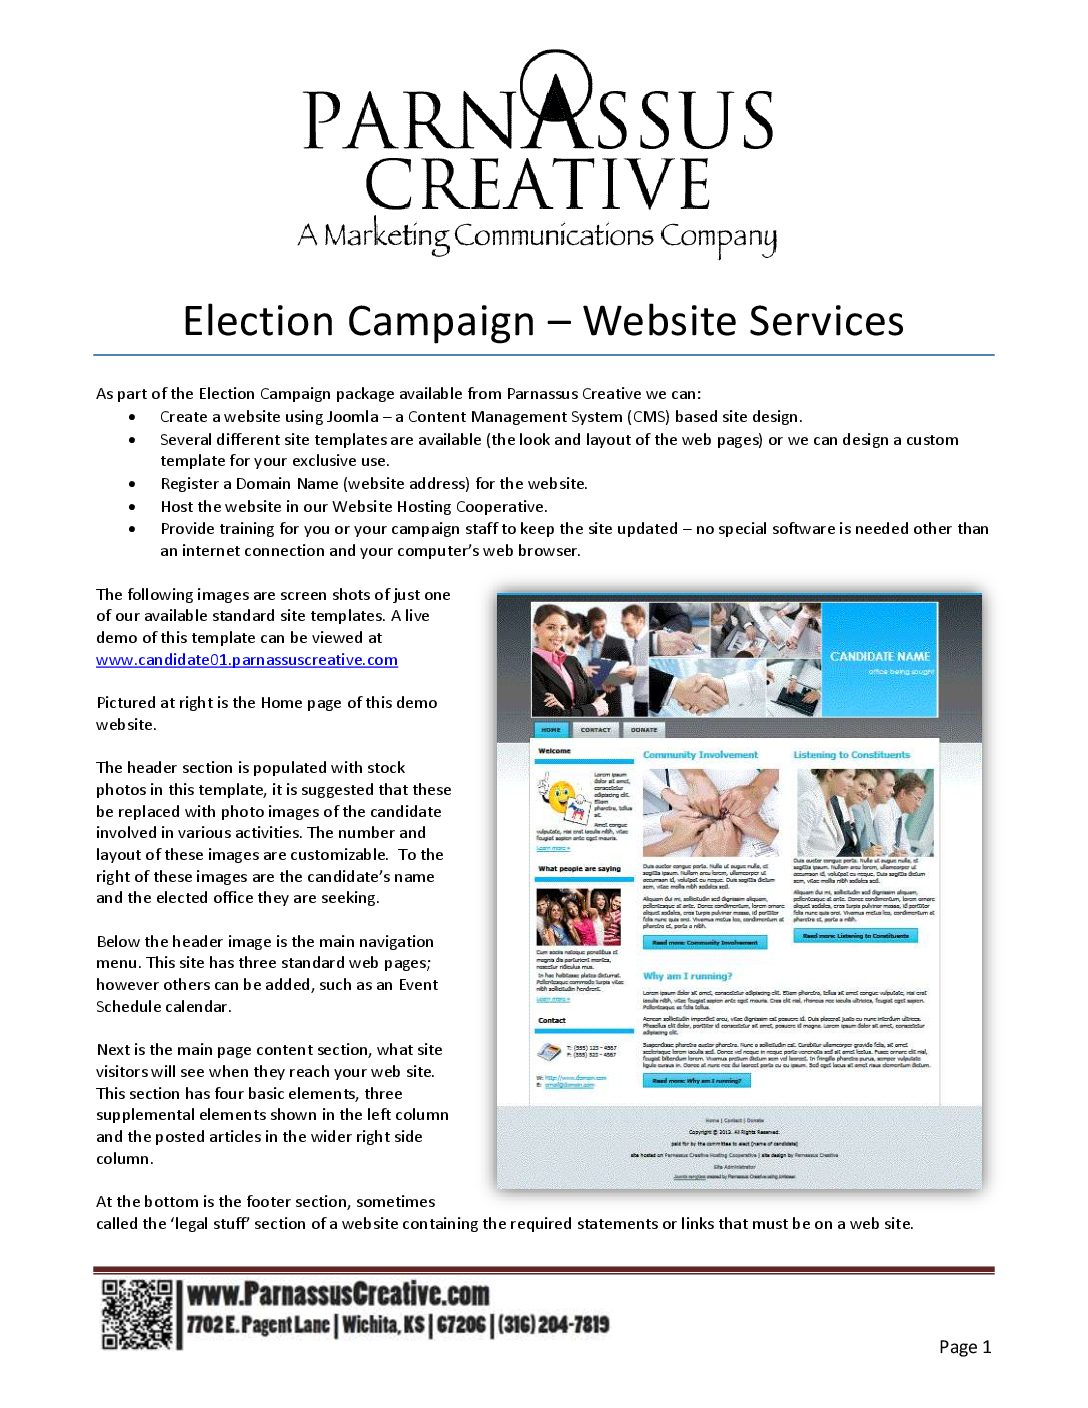 Election Campaign Packet